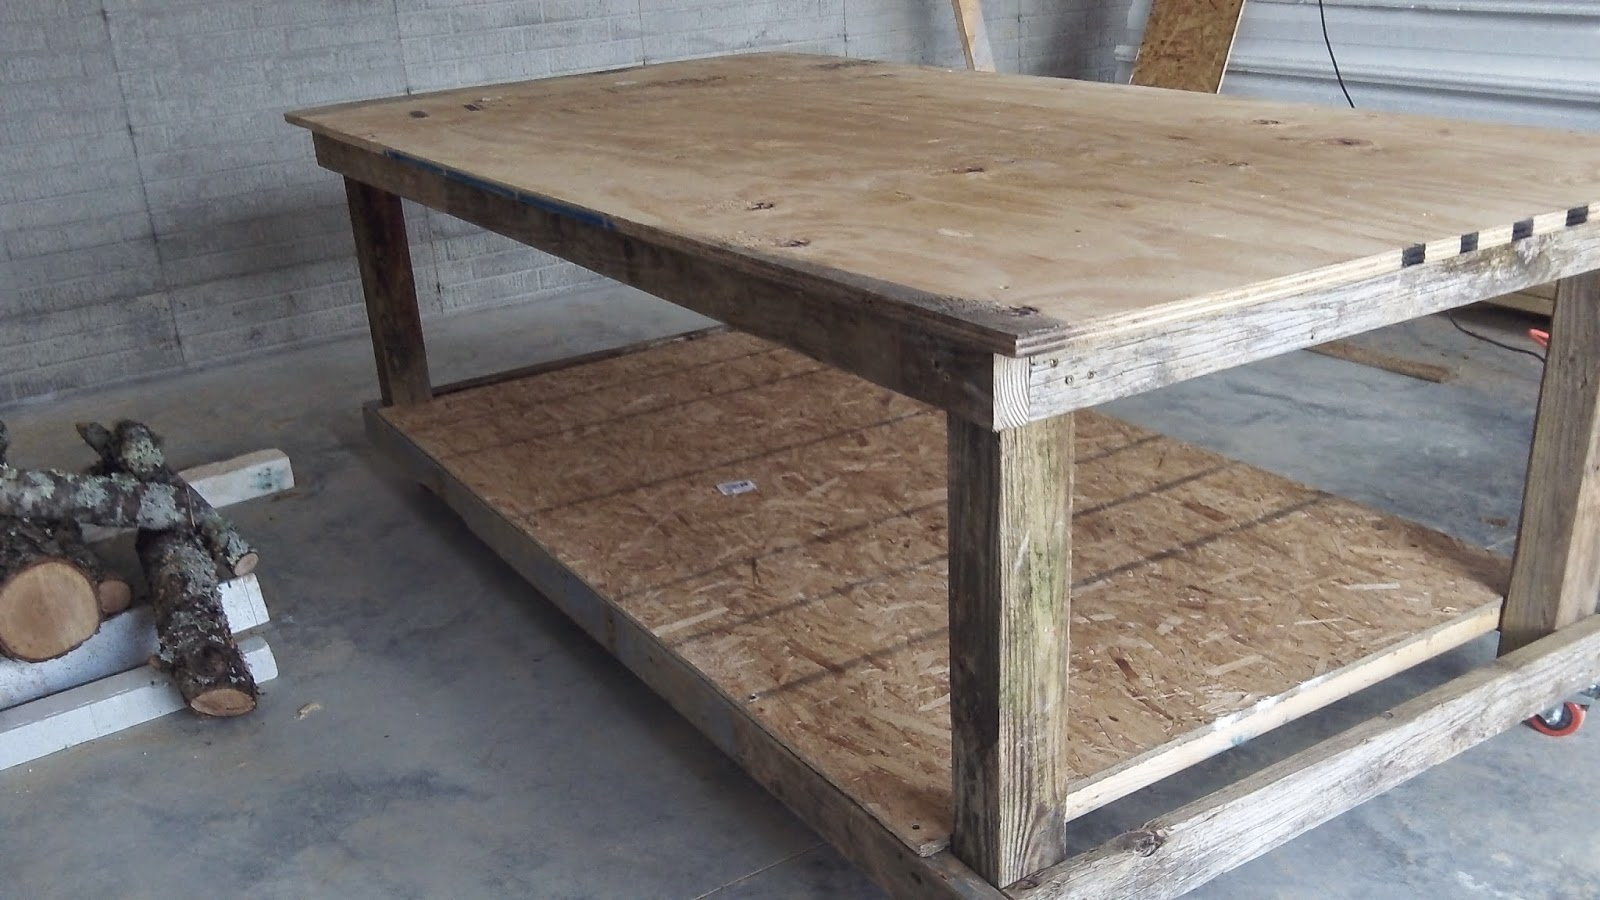 Work bench made from recovered wood